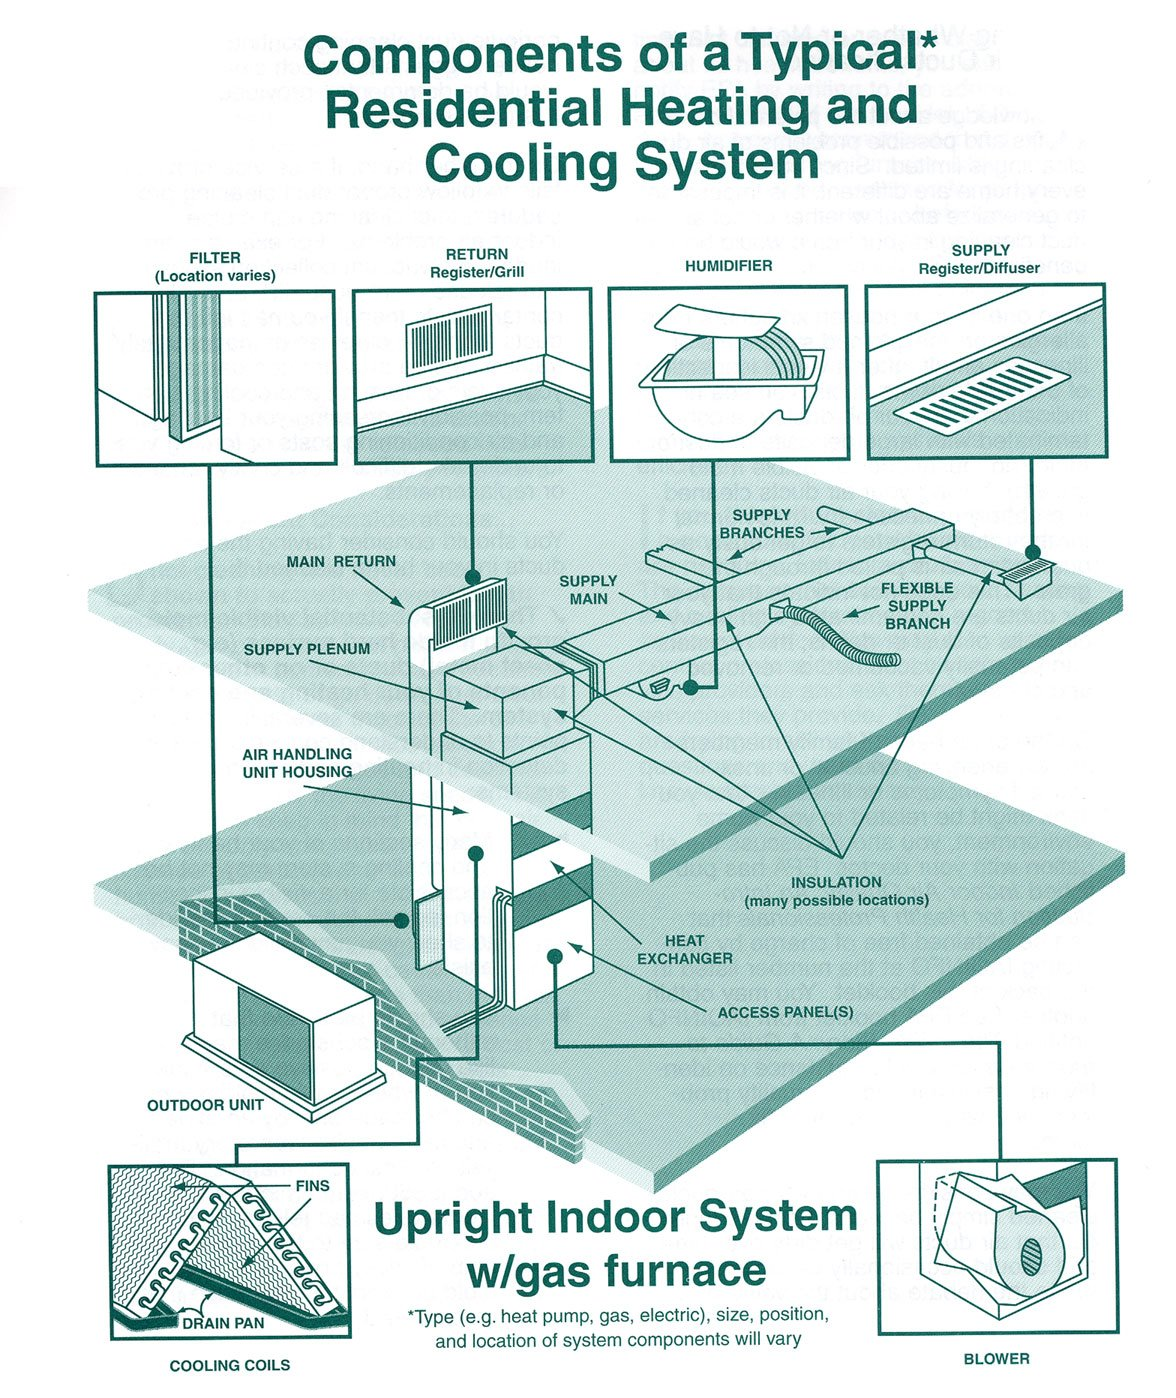 hight resolution of duct cleaning generally refers to the cleaning of various heating and cooling system components of forced air systems including the supply and return air